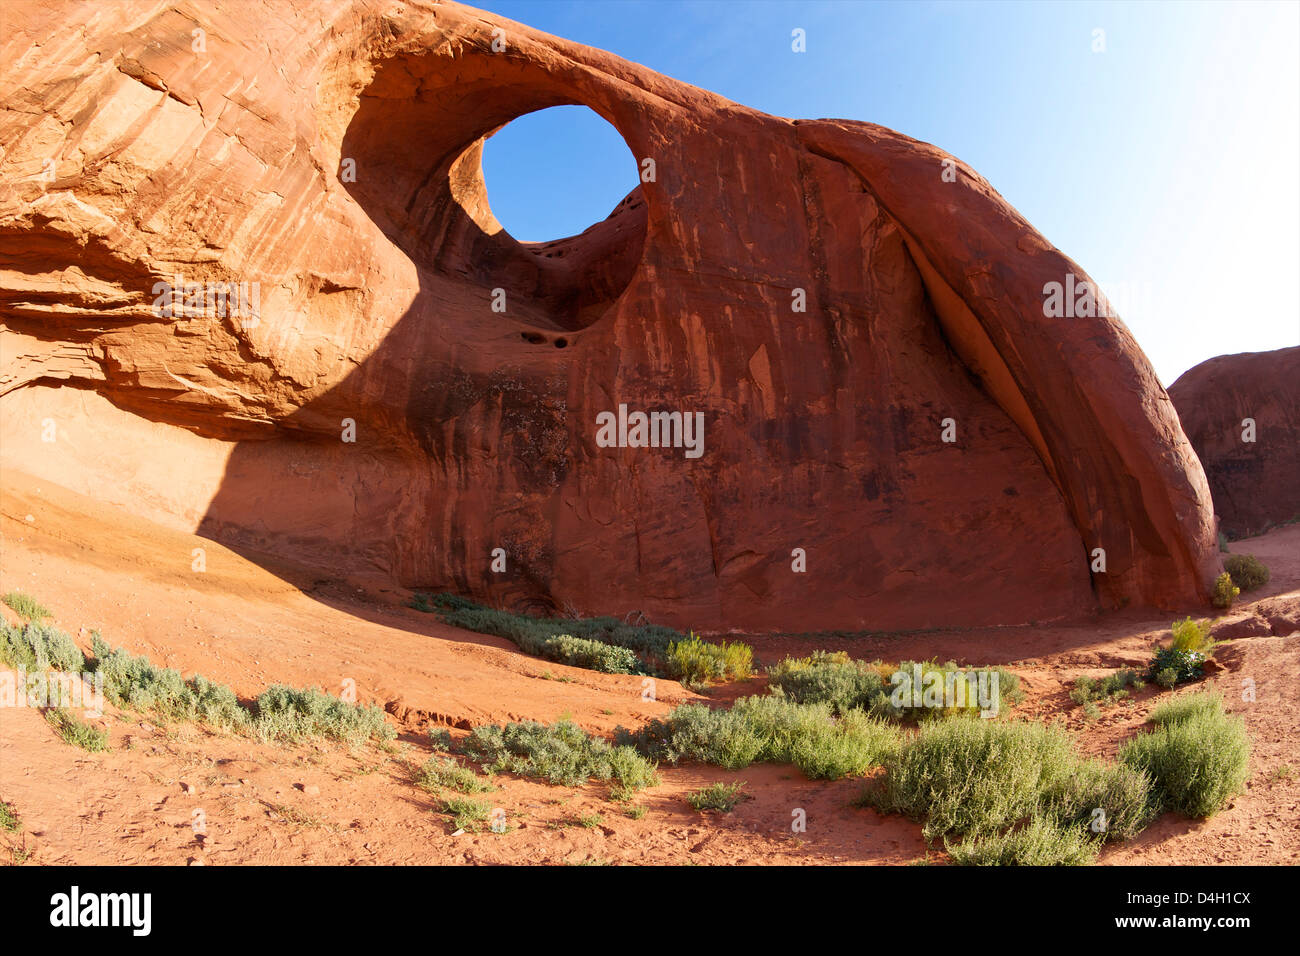 Ear of the Wind, Monument Valley Navajo Tribal Park, Utah, USA - Stock Image